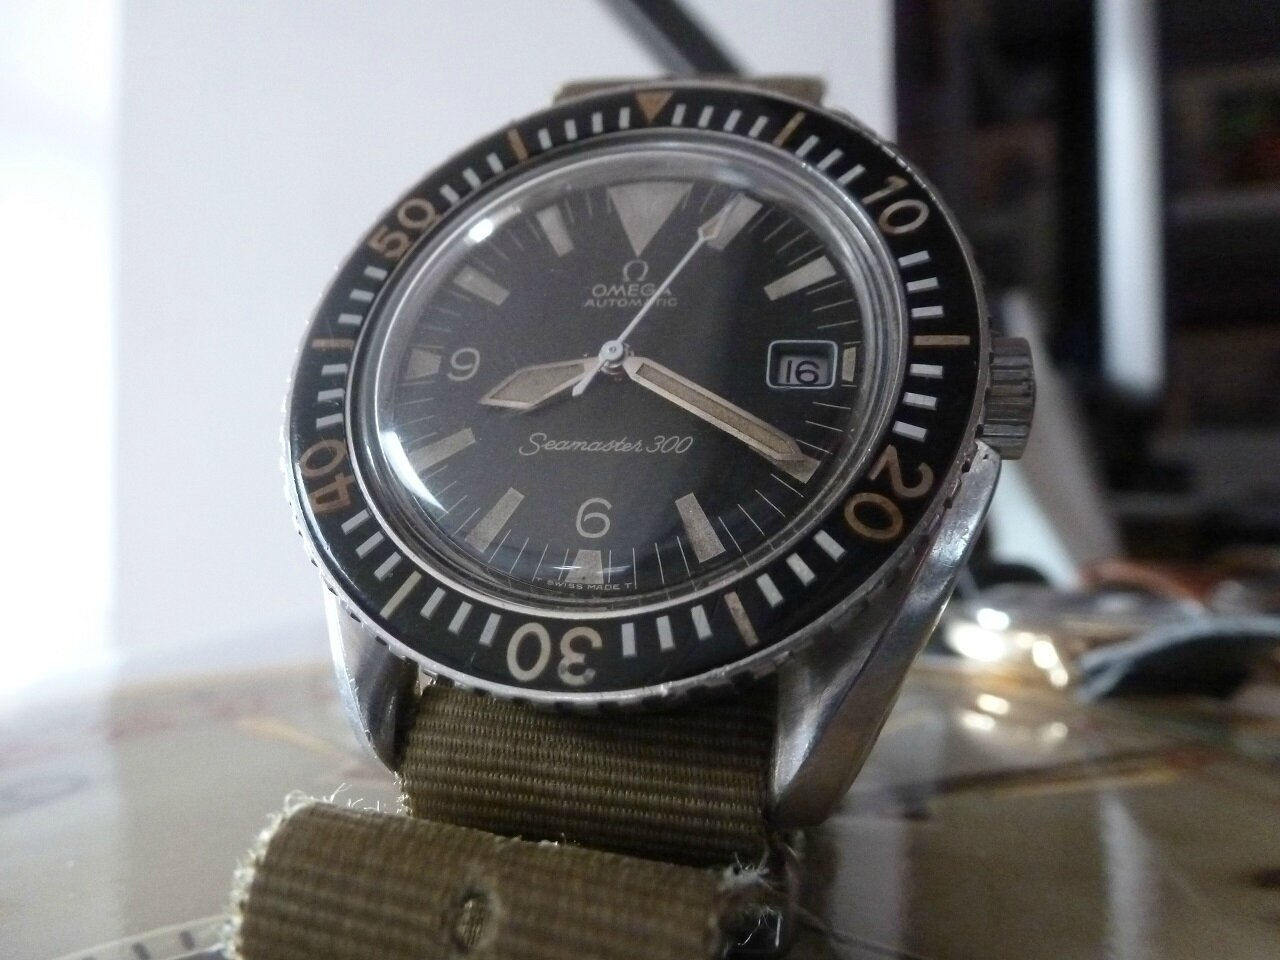 Seamaster 300 166024 BIG TRIANGLE 1967 d'origine !!!